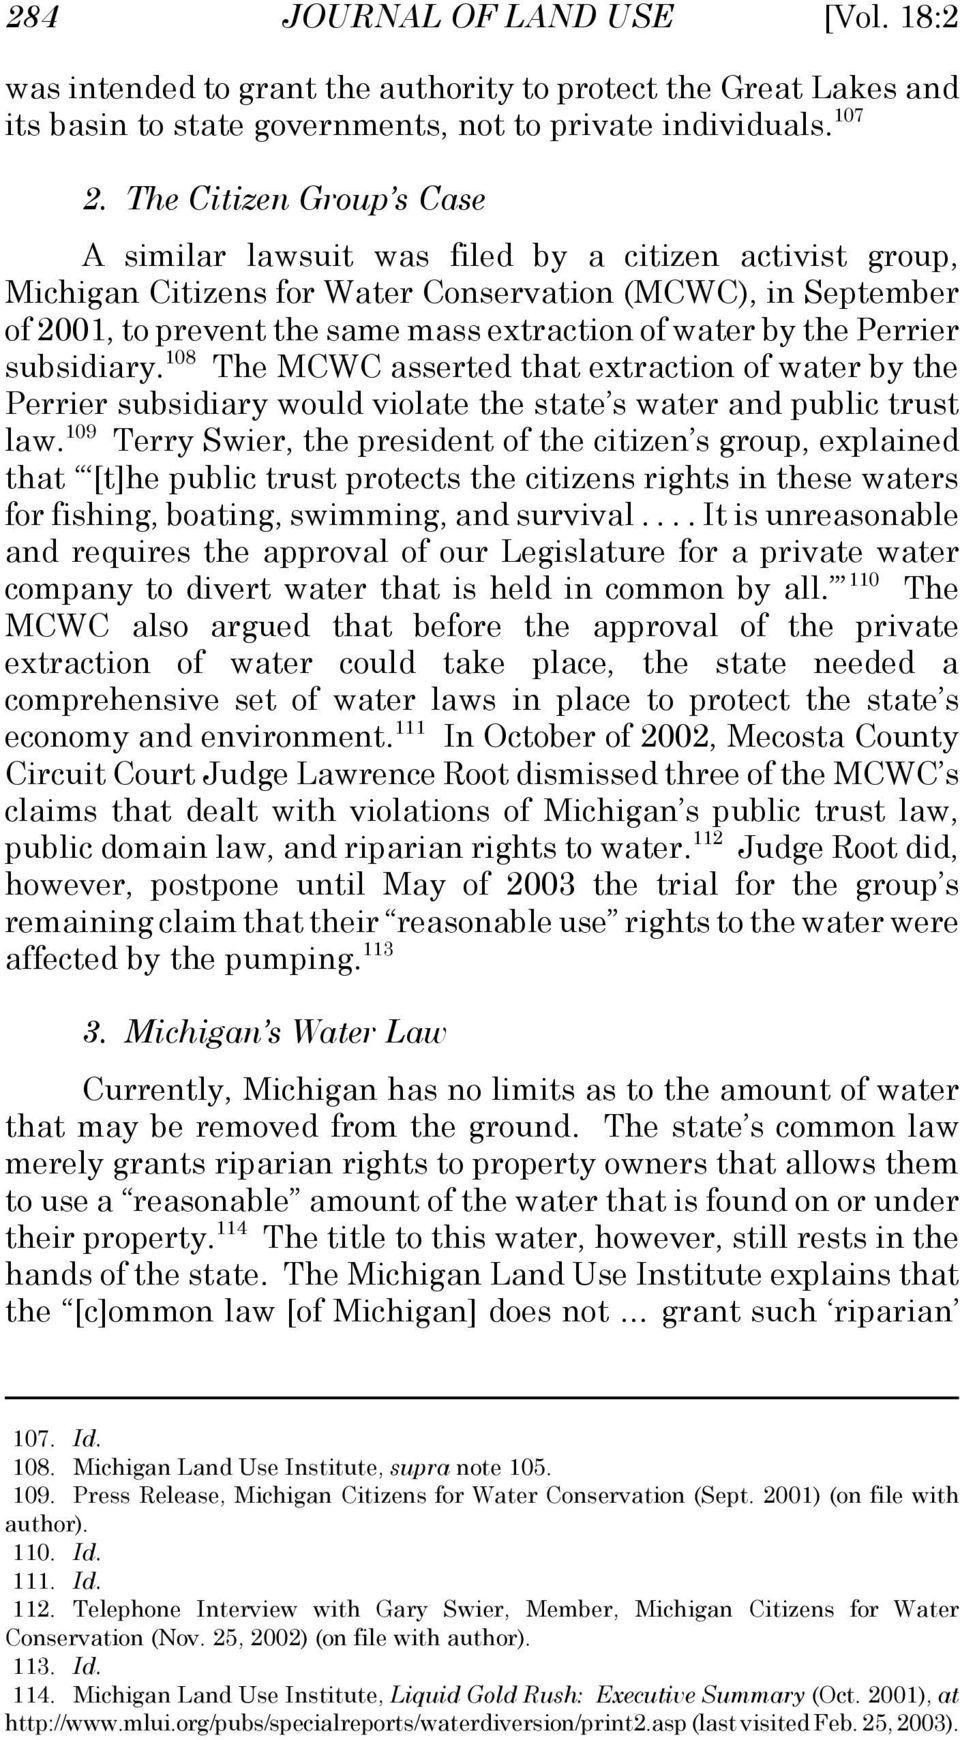 by the Perrier subsidiary. 108 The MCWC asserted that extraction of water by the Perrier subsidiary would violate the state s water and public trust law.